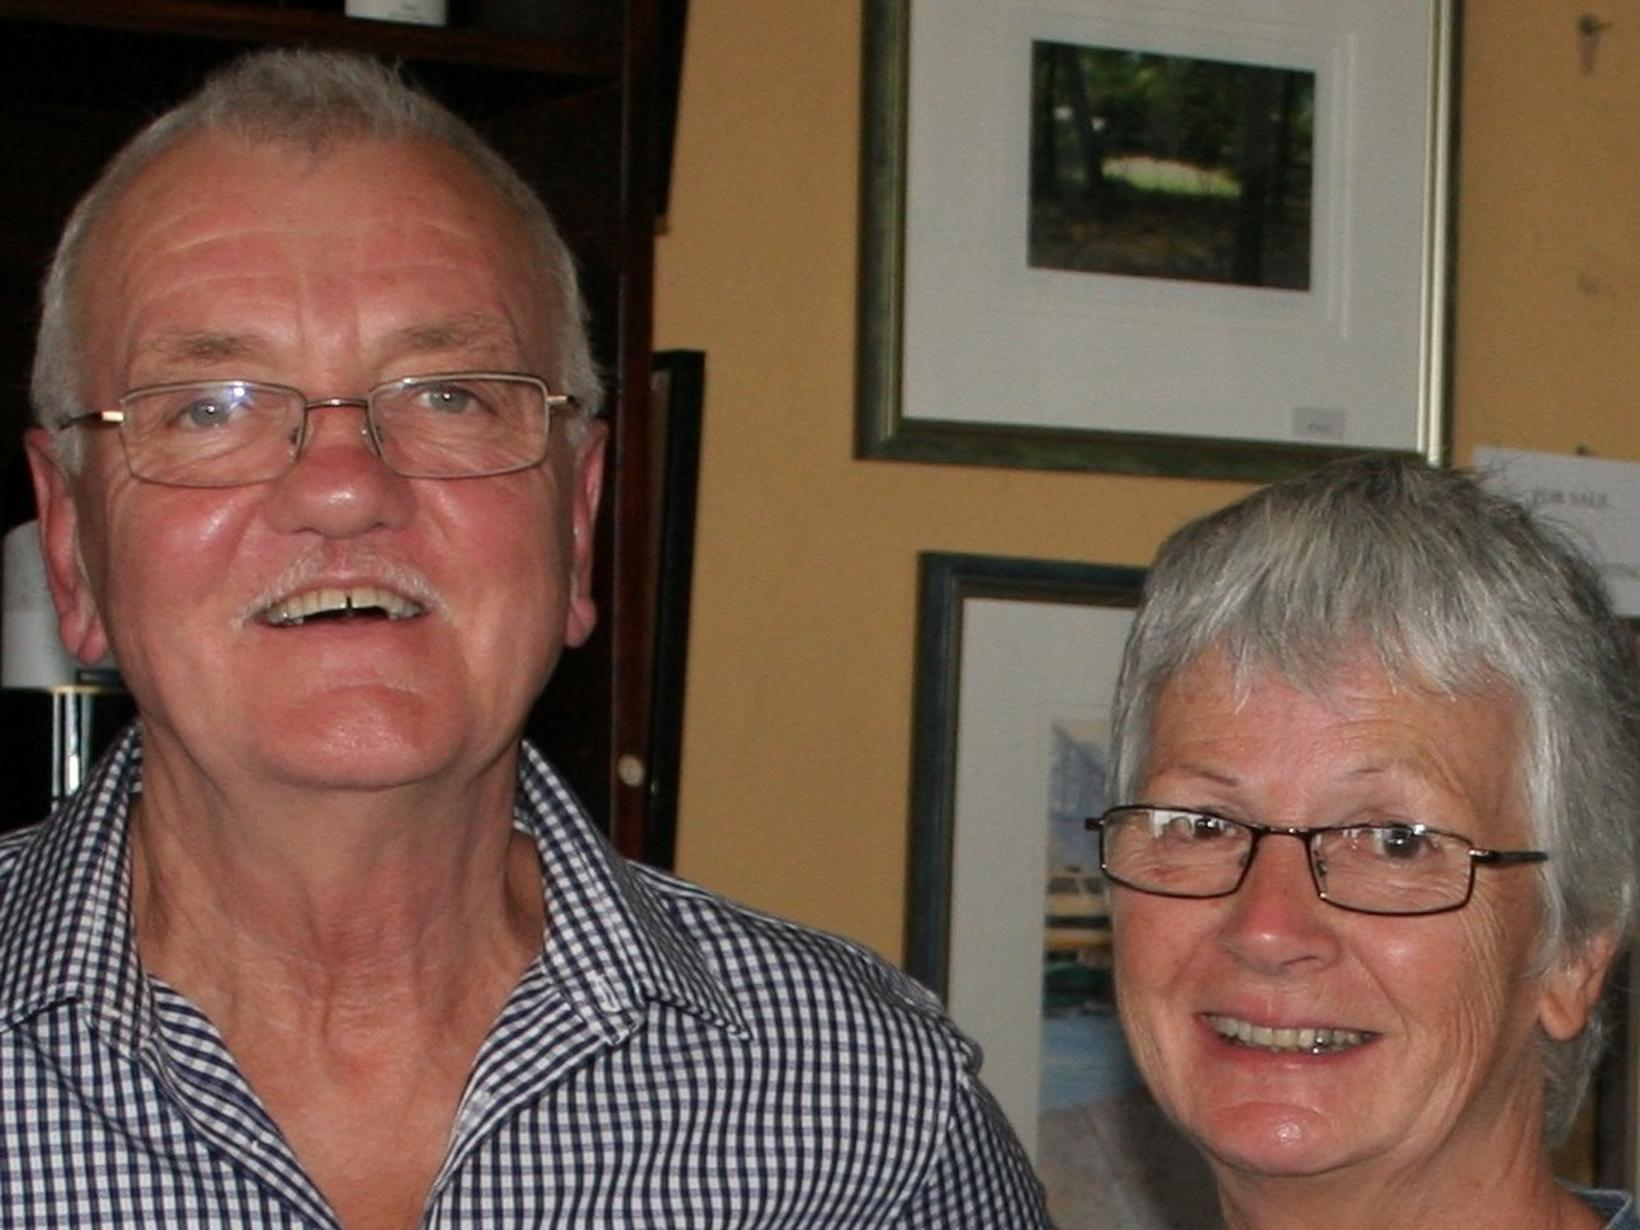 Karyl & James from Orford, Tasmania, Australia